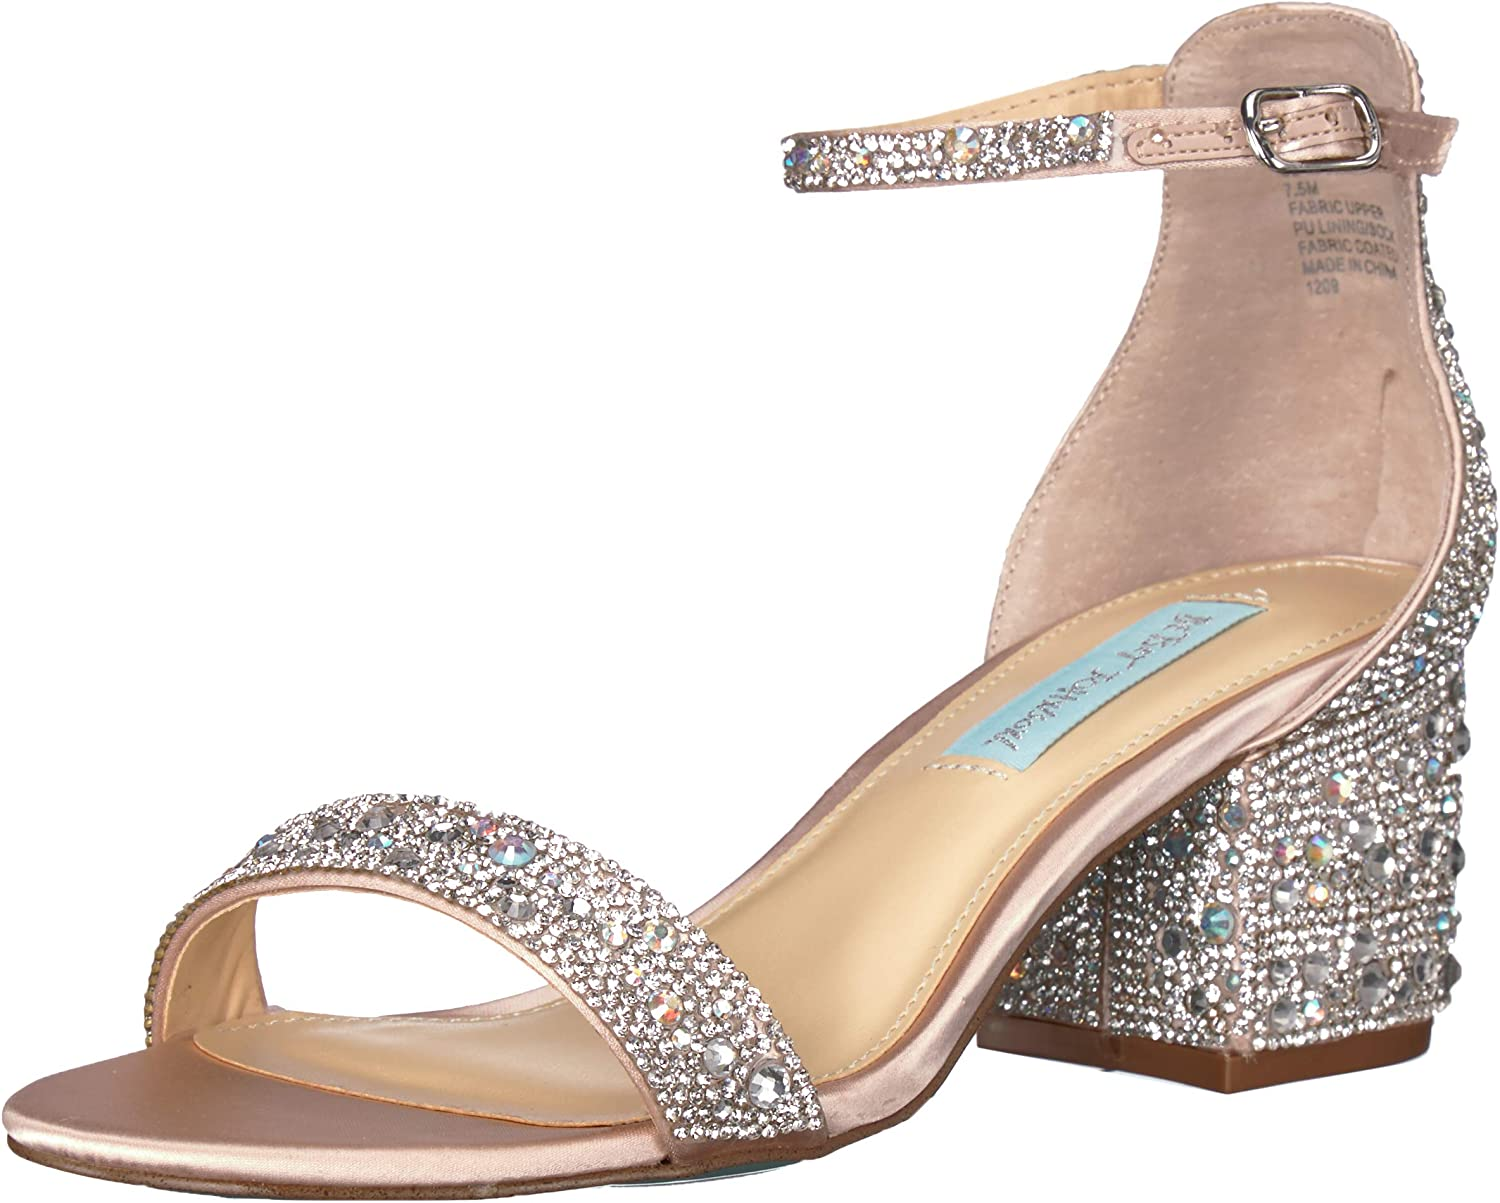 Blue All items in the store by Betsey Johnson 5 ☆ very popular Sandal Women's Sb-Raine Dress